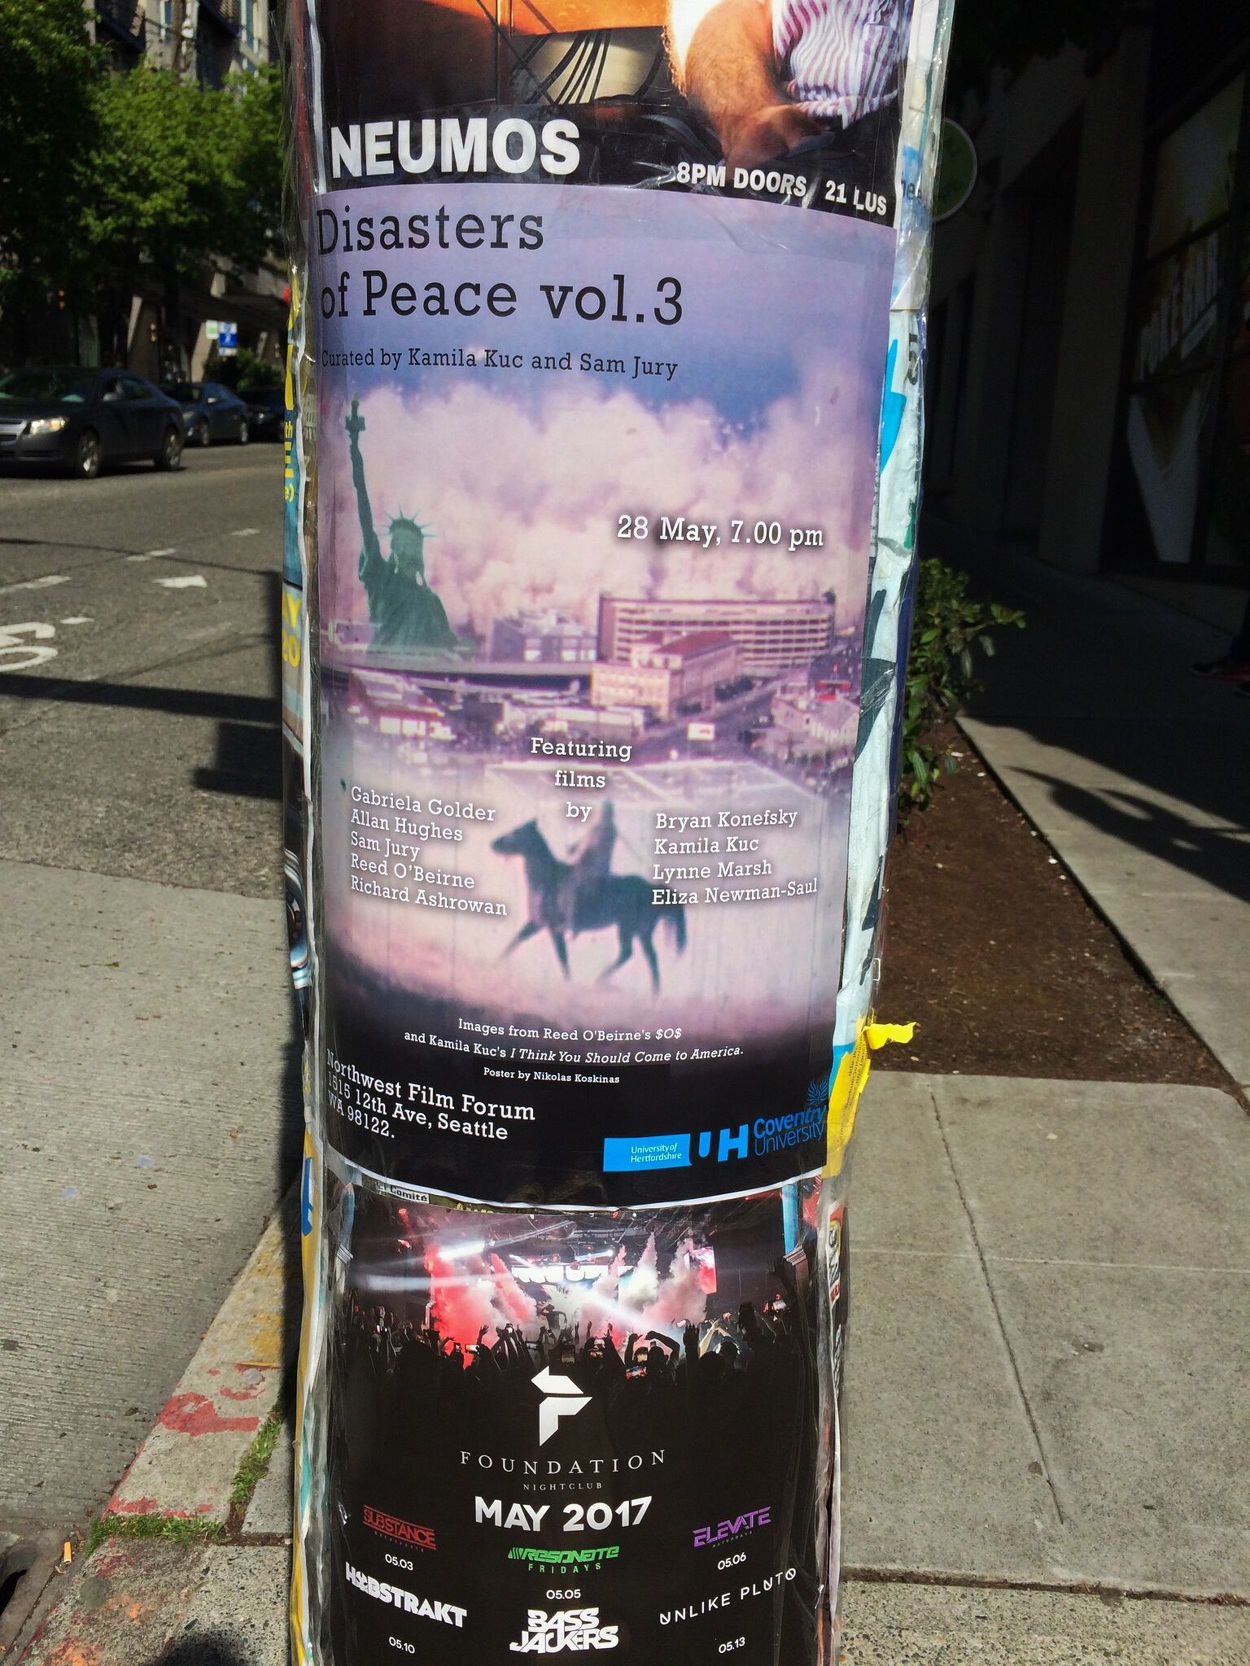 Disasters of Peace vol.3 poster, Seattle, WA